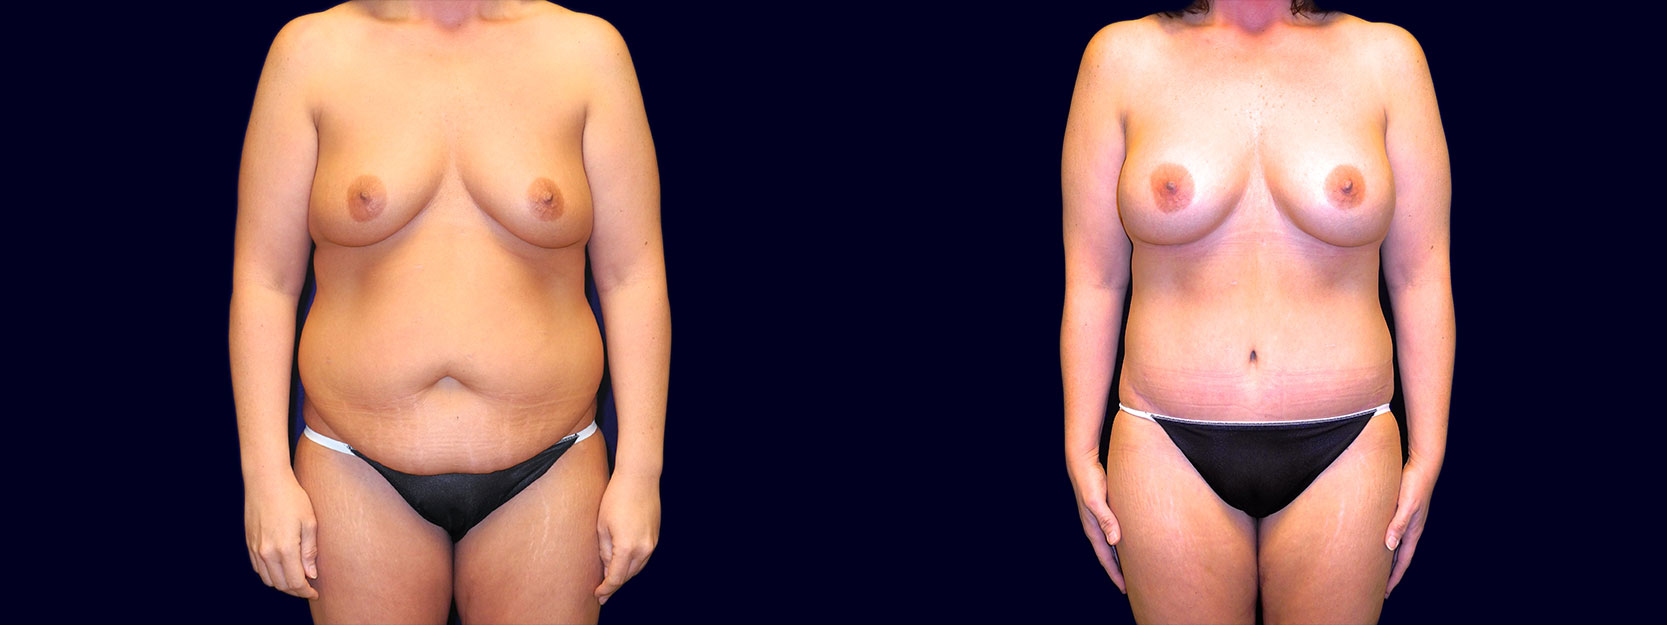 Frontal View - Breast Augmentation & Tummy Tuck After Weight Loss